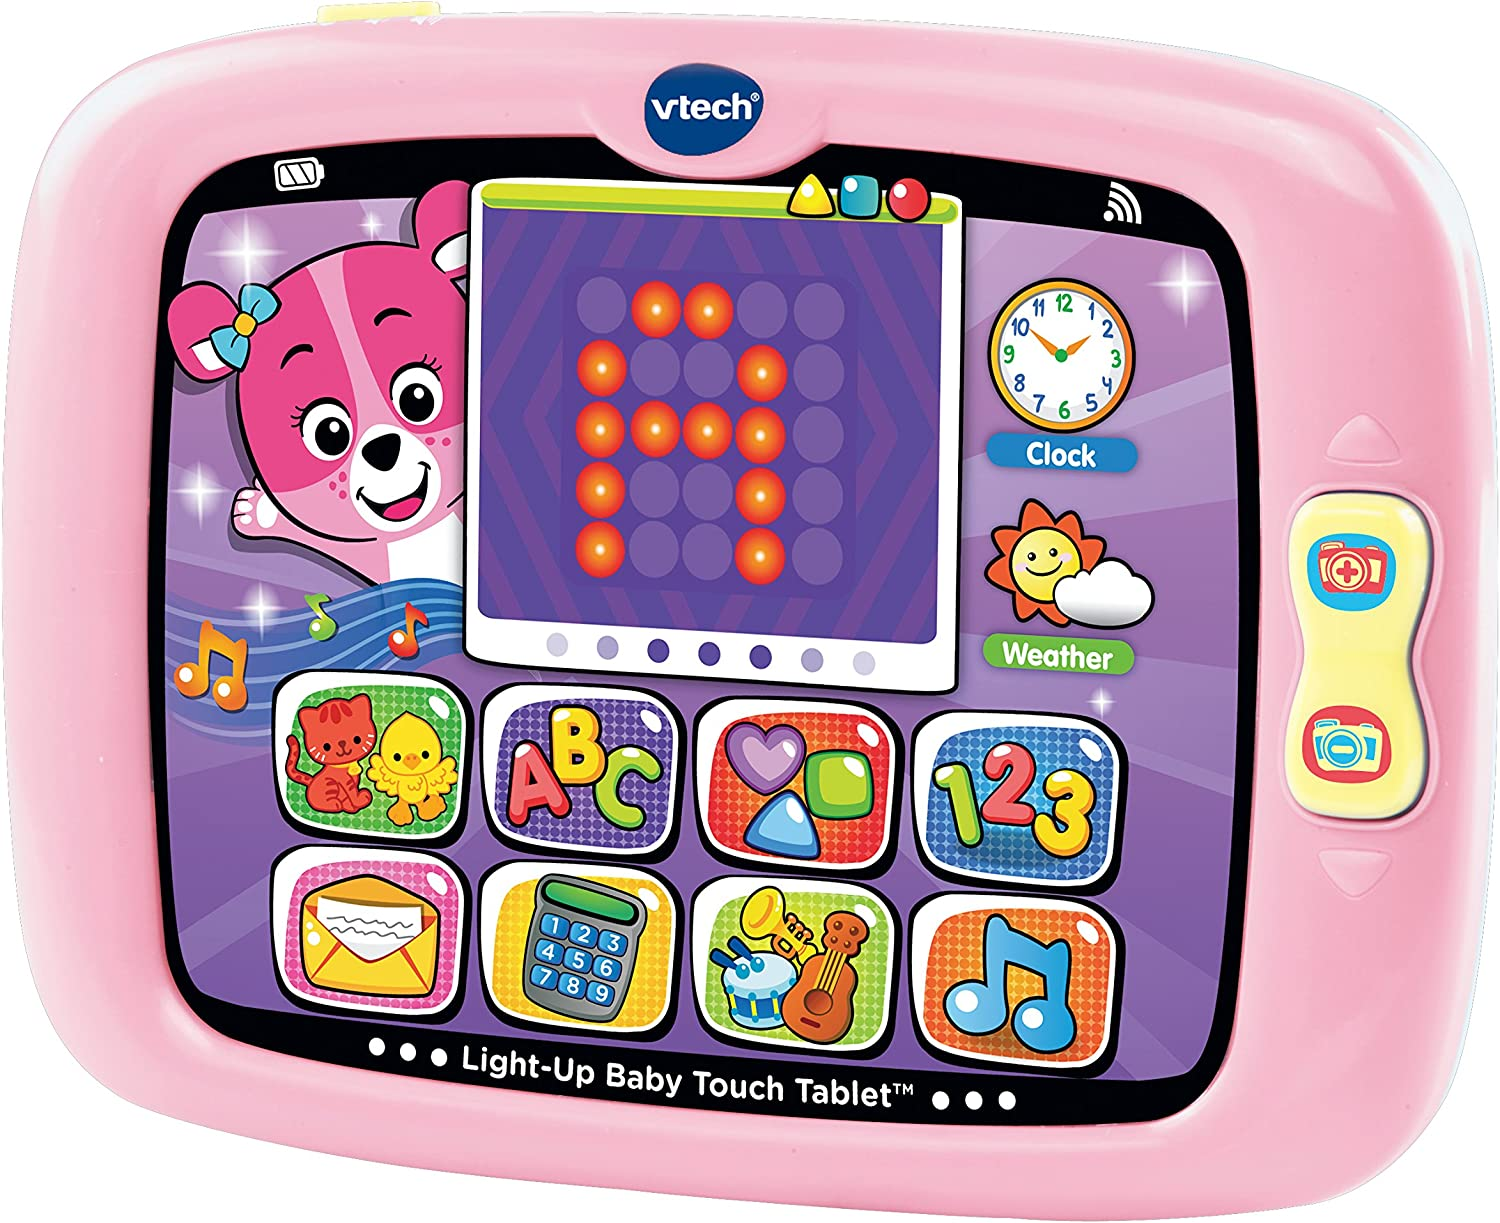 VTech LightUp Baby Touch Tablet, Pink